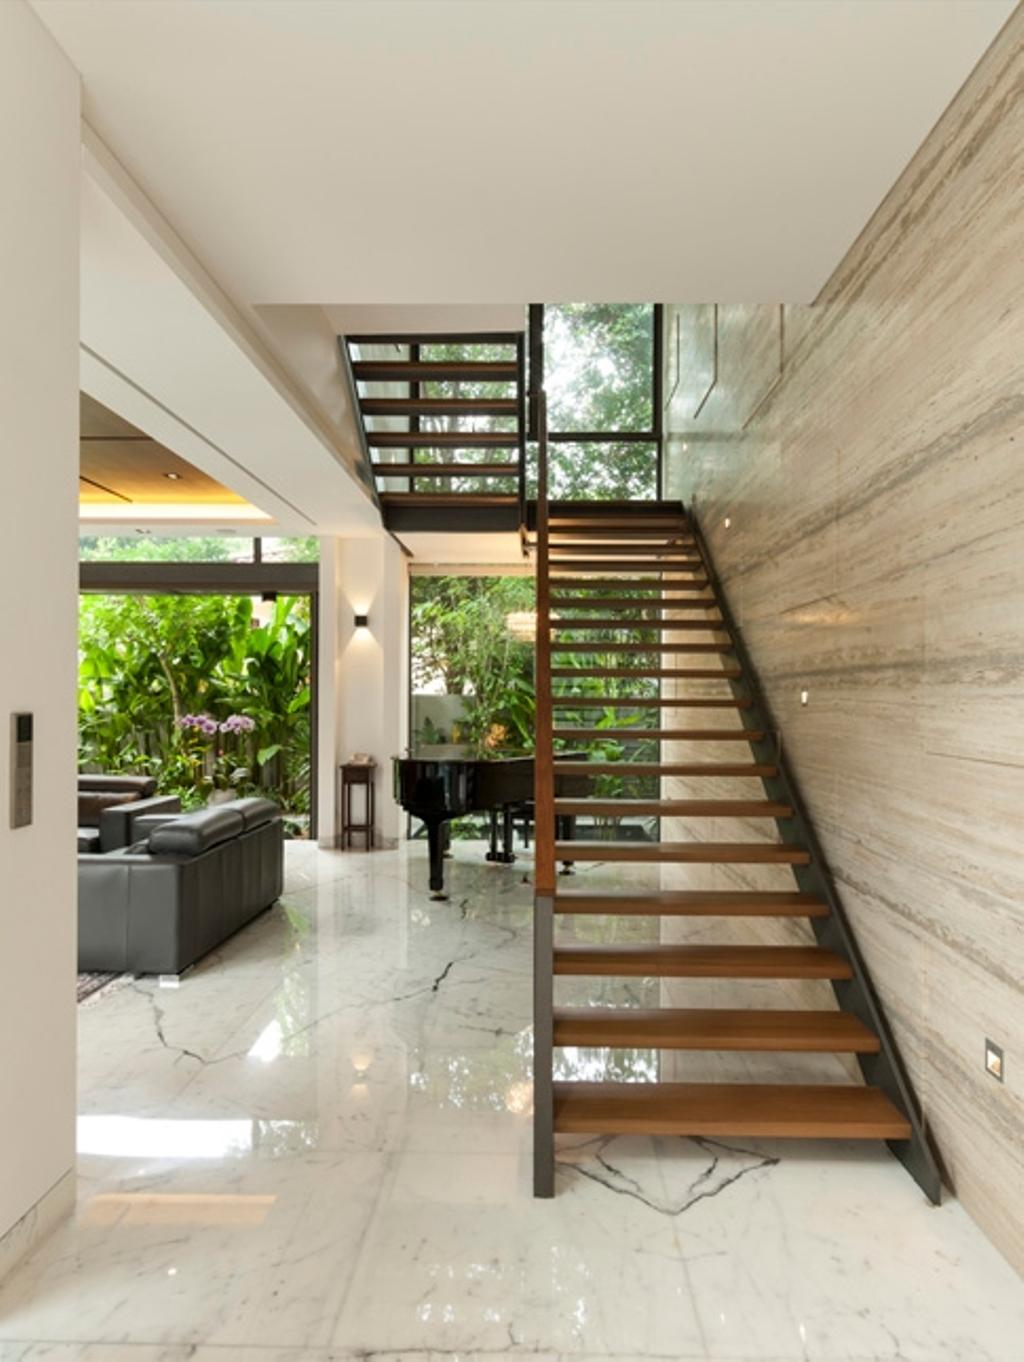 Contemporary, Landed, Kingsmead Road, Architect, Timur Designs, Banister, Handrail, Staircase, Grand Piano, Leisure Activities, Music, Musical Instrument, Piano